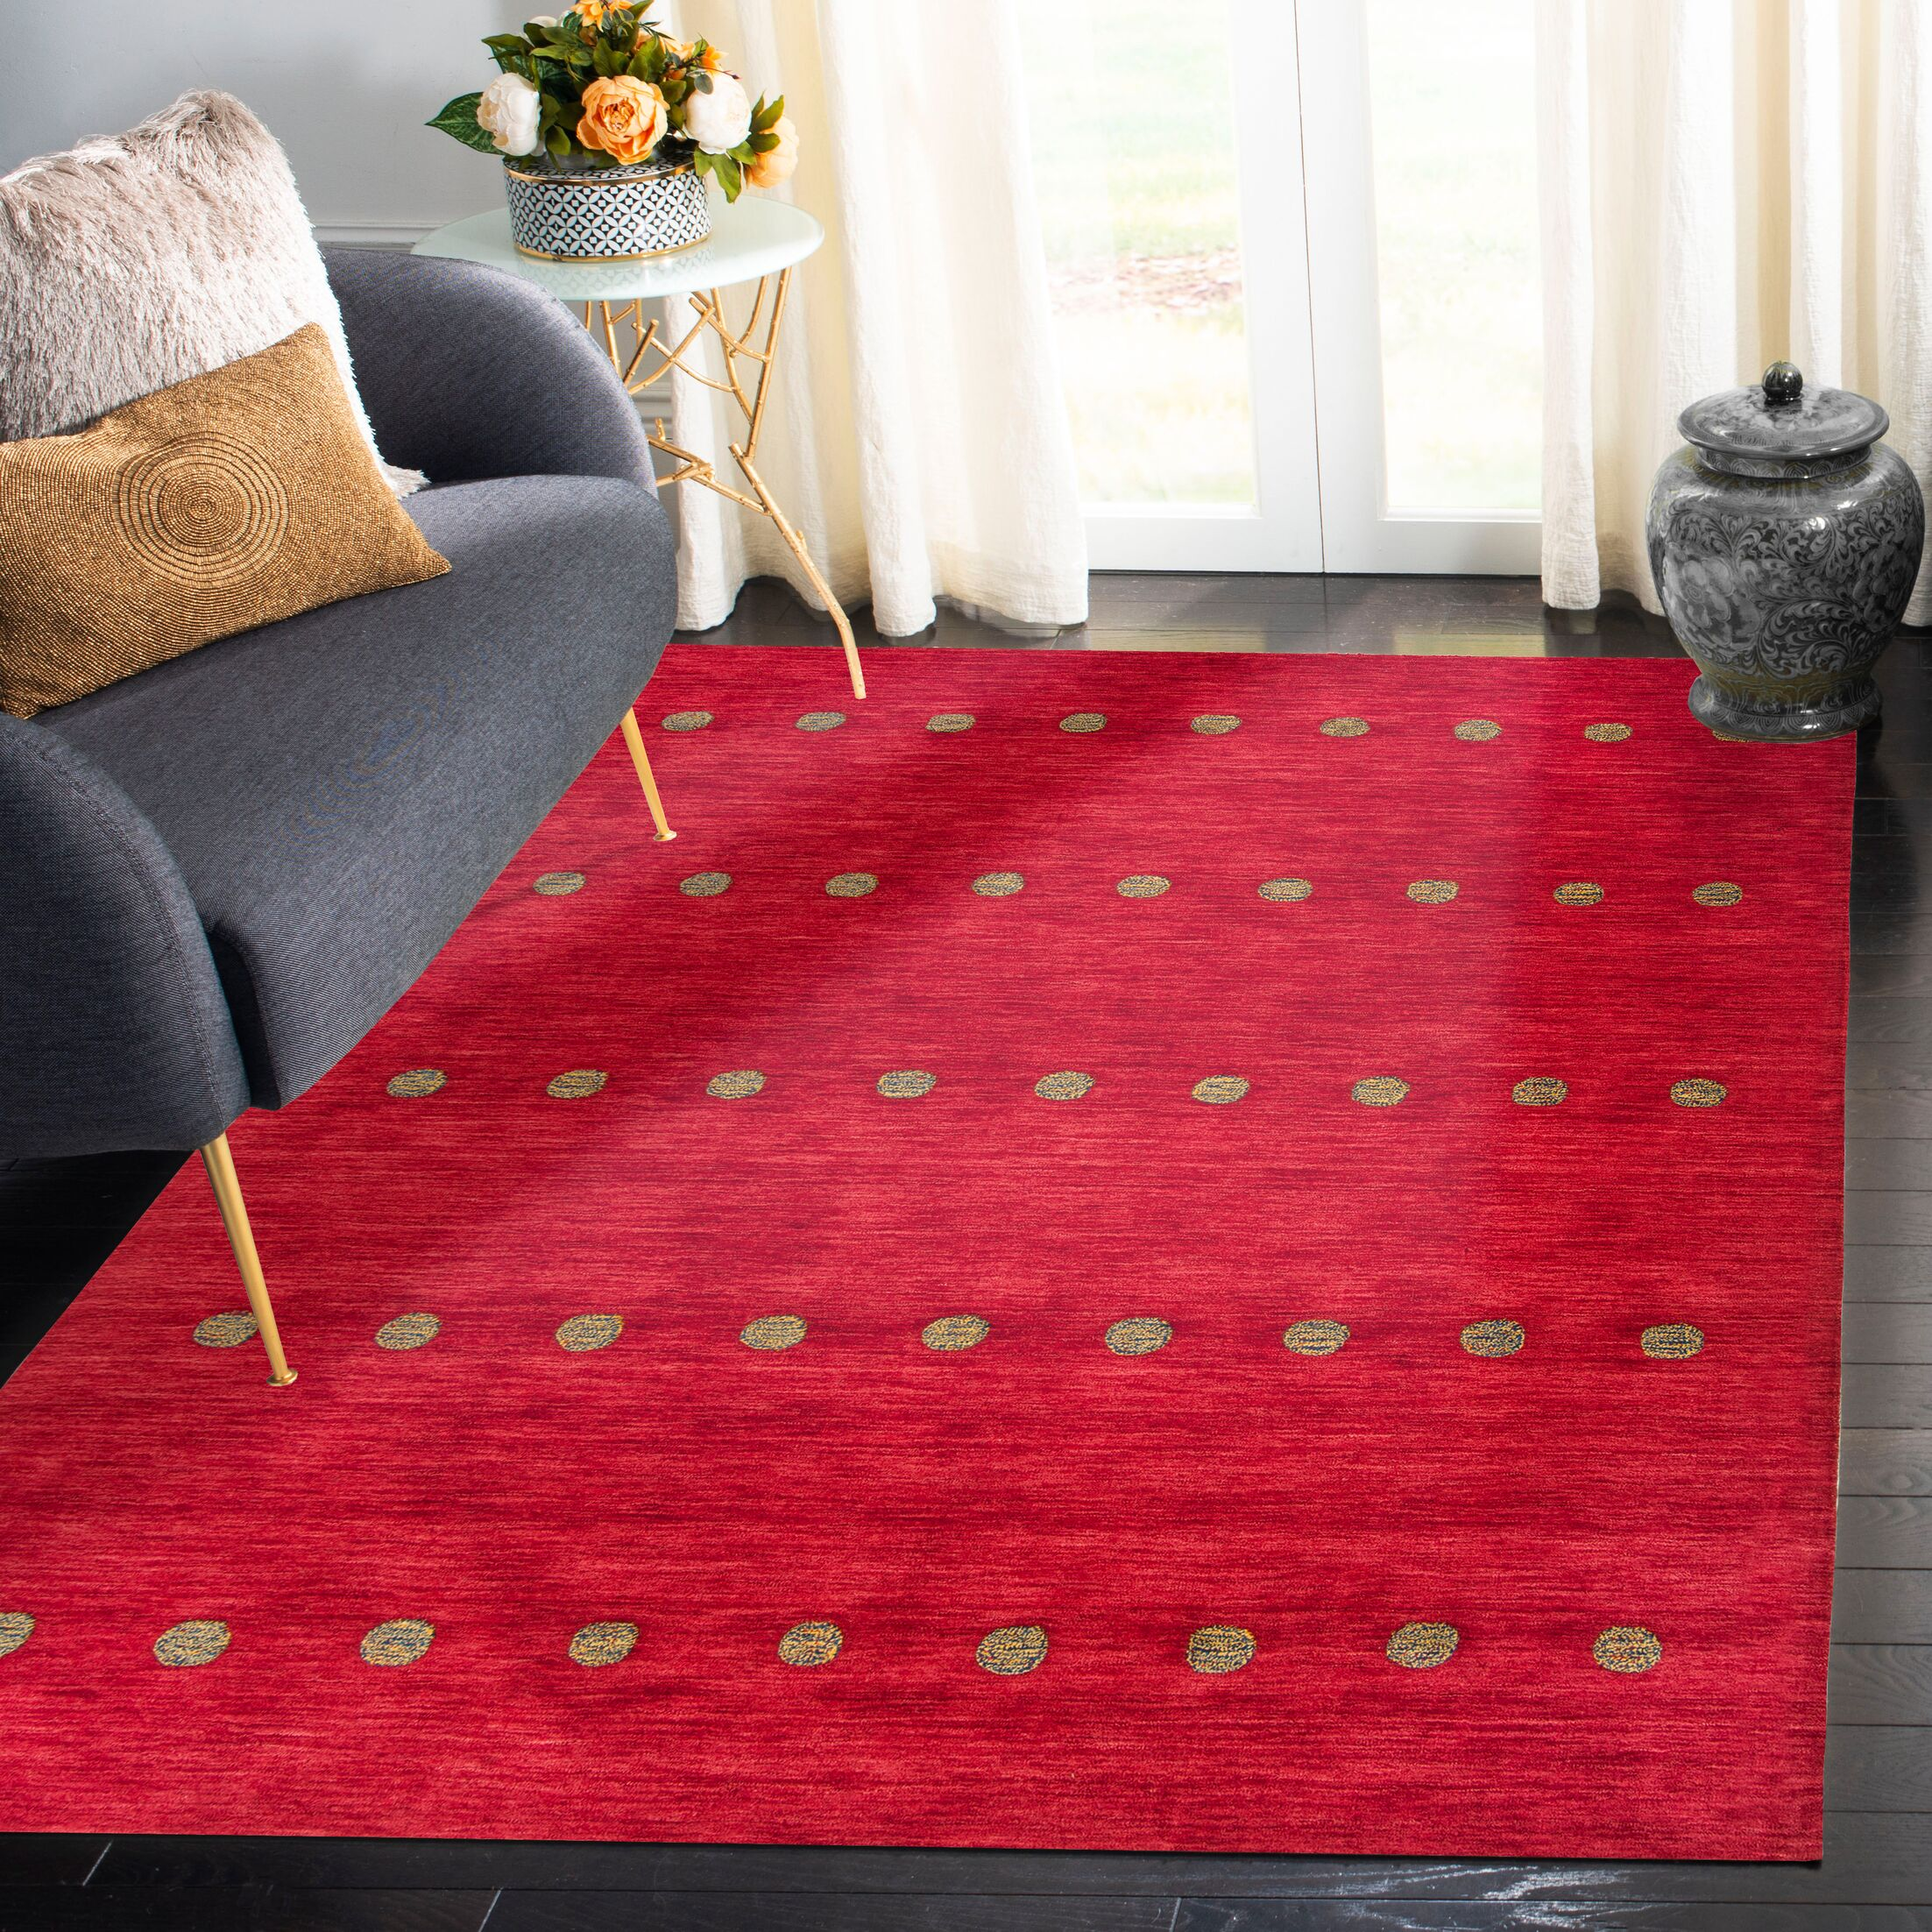 Pixley Hand-Woven Wool Red Area Rug Rug Size: Runner 2'3